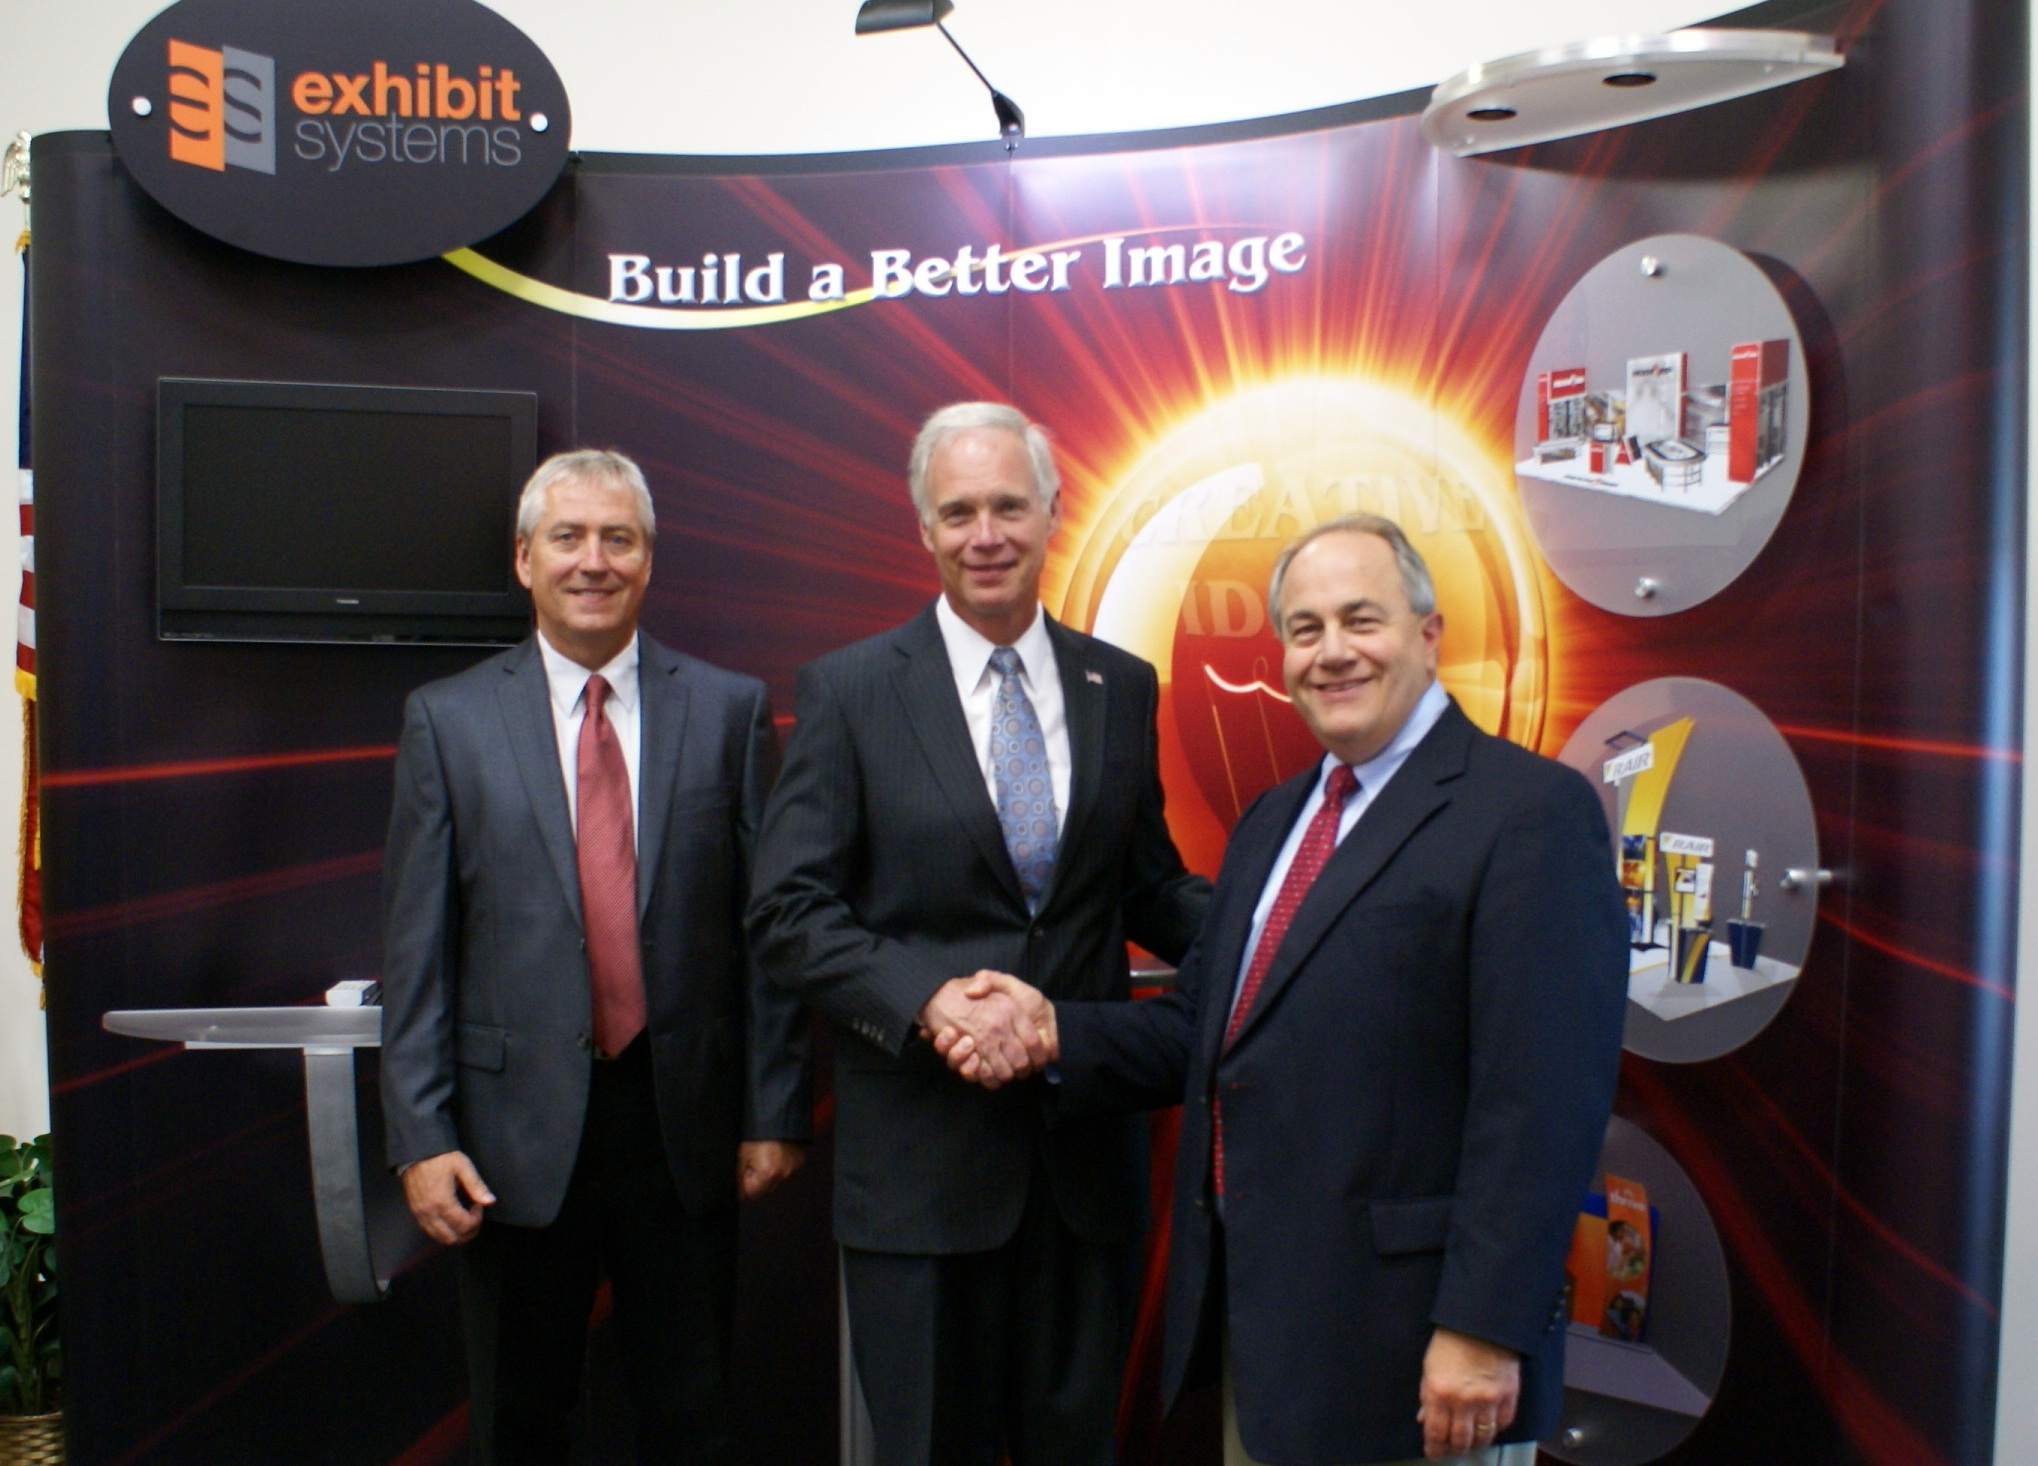 U.S. Sen. Ron Johnson poses for a parting photo with Dave Jentz, Dick Magliocco